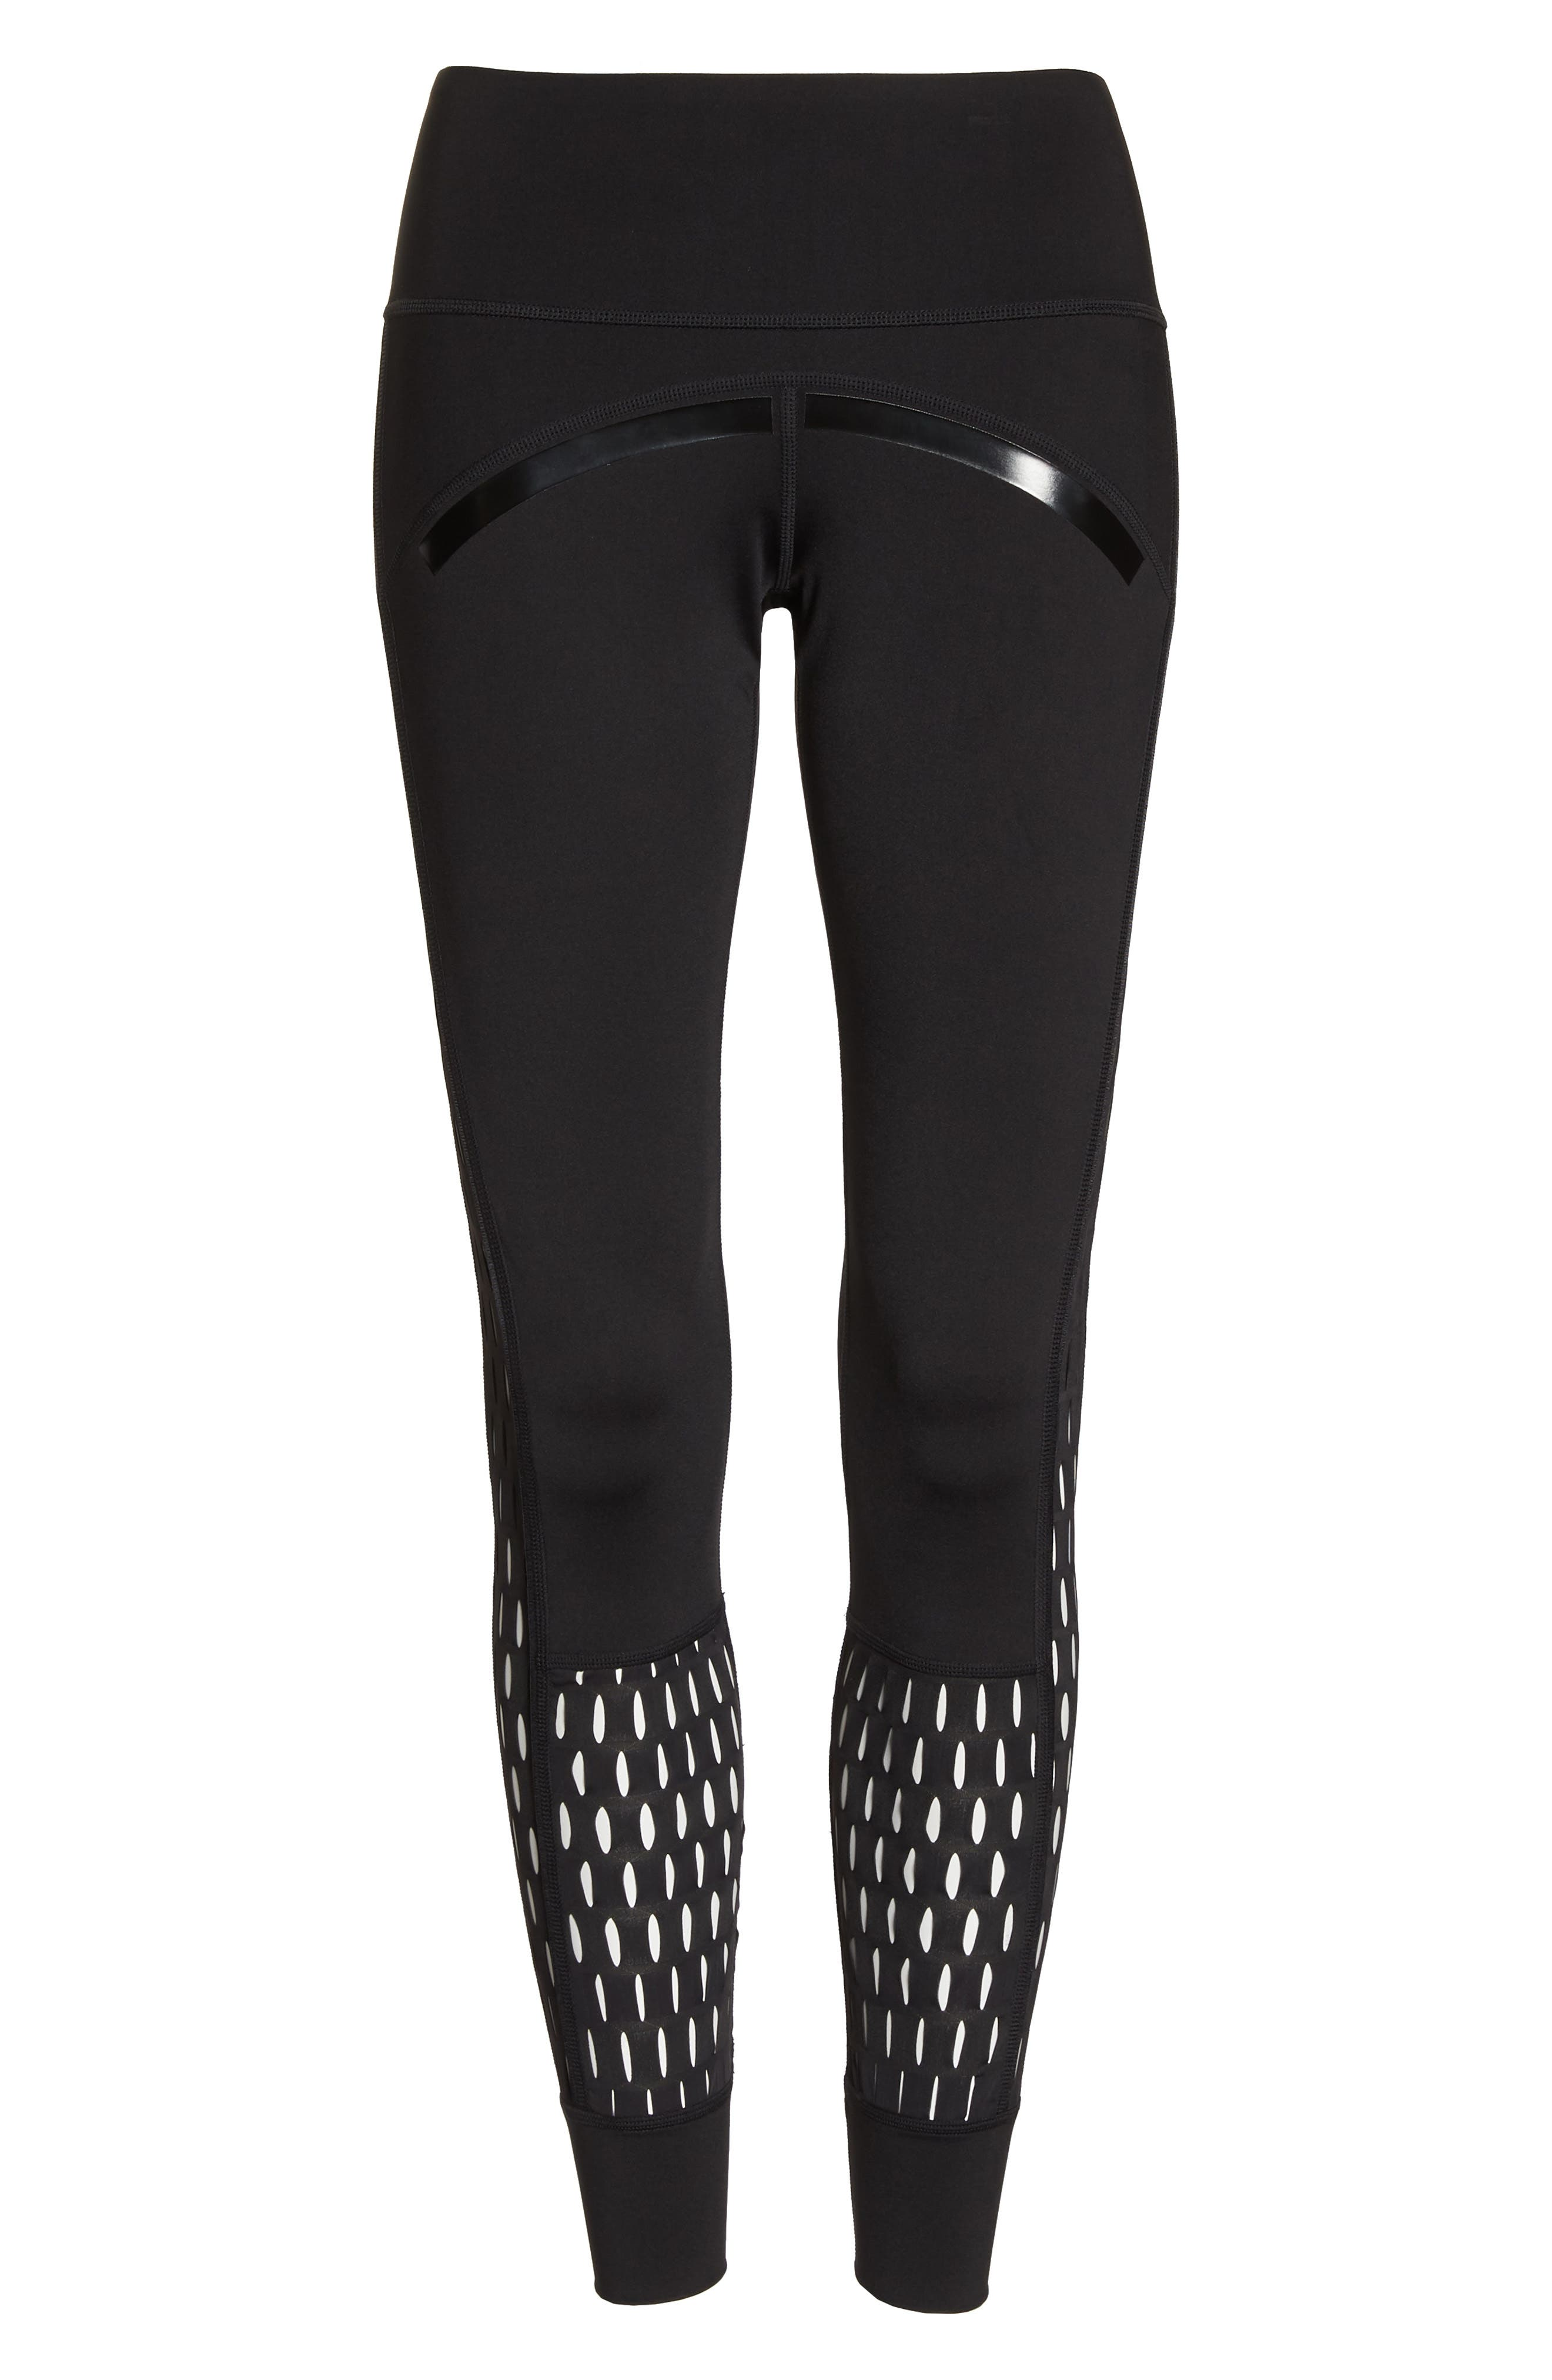 Run Training Tights,                             Alternate thumbnail 7, color,                             001